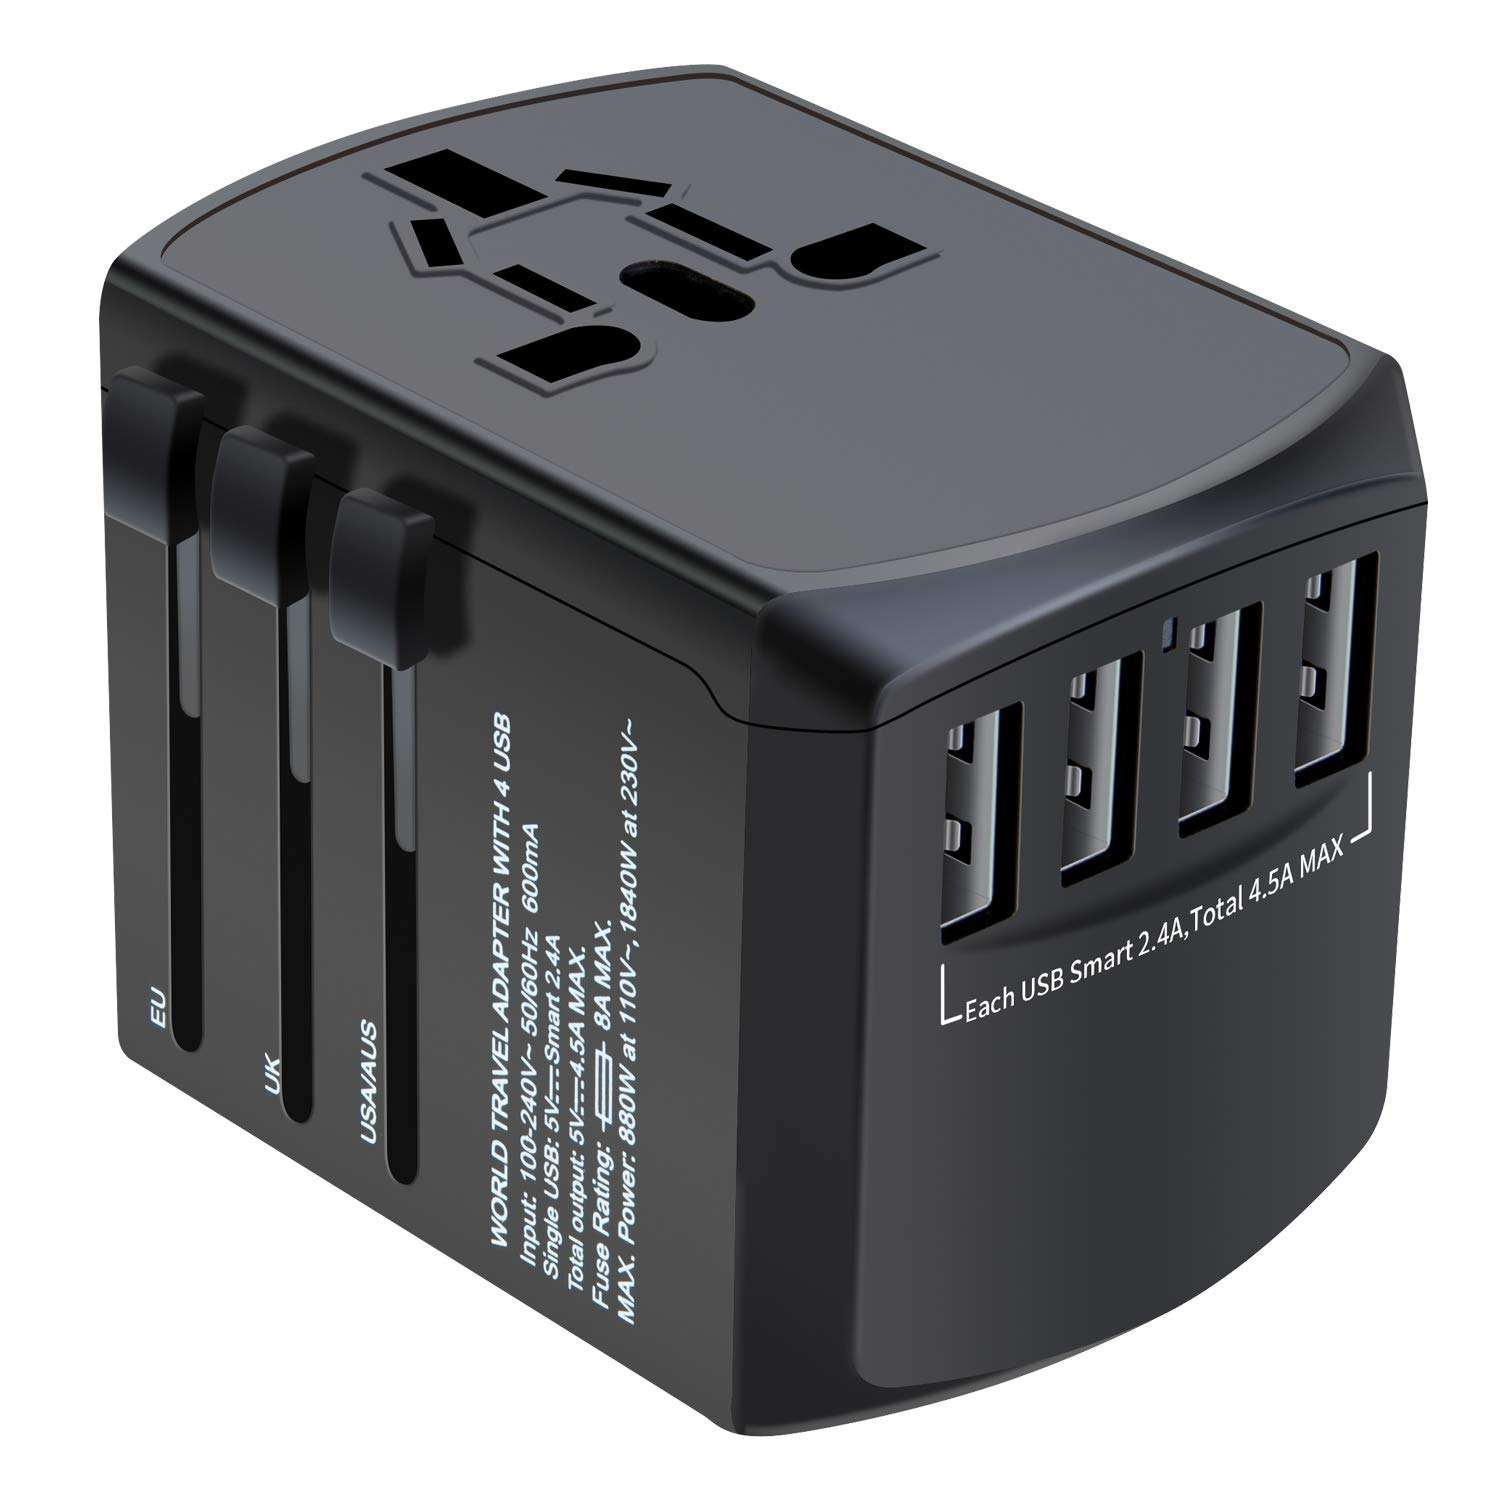 Electrical Plug Socket USB Charger Travel Adapter Multi Plug 100-240V Universal Adaptor